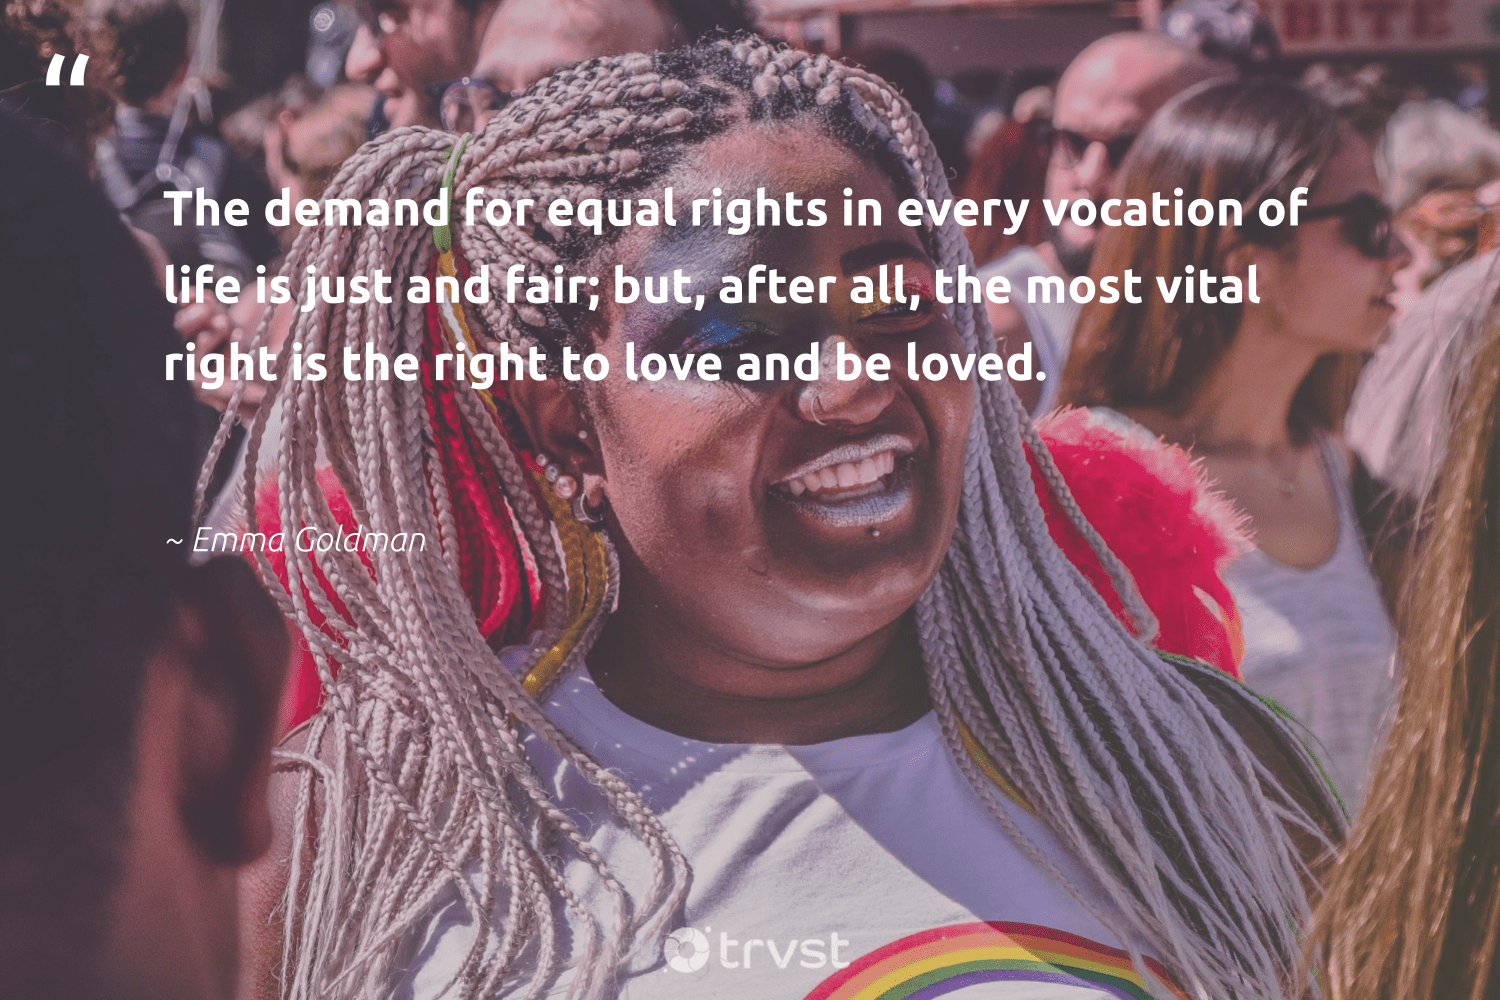 """The demand for equal rights in every vocation of life is just and fair; but, after all, the most vital right is the right to love and be loved.""  - Emma Goldman #trvst #quotes #equality #love #equalrights #empowerment #socialchange #bethechange #collectiveaction #giveback #socialgood #socialimpact"